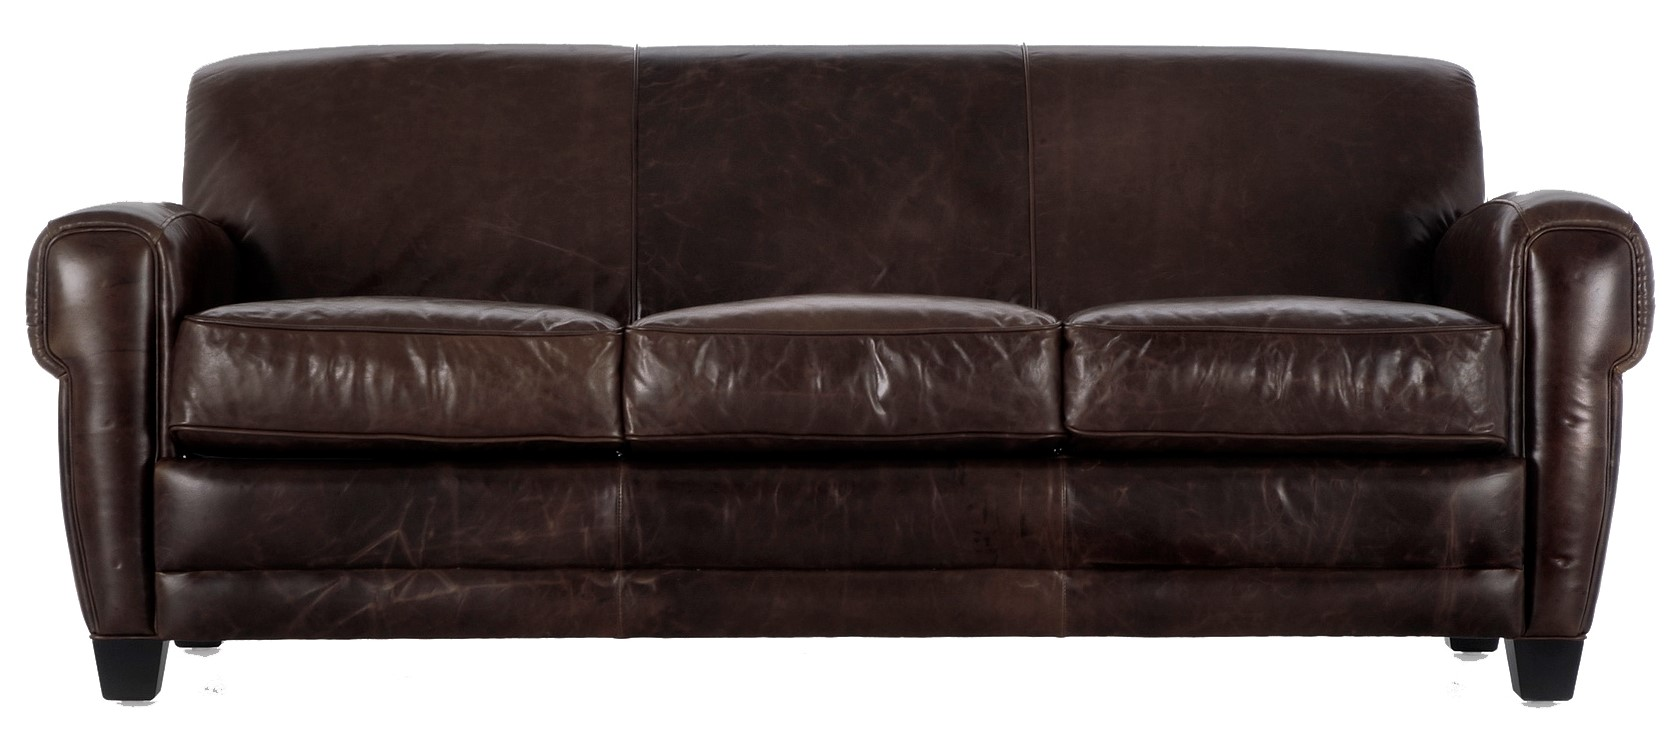 Havana 614 Leather Sofa Collection   IN STOCK FAST FREE SHIPPING